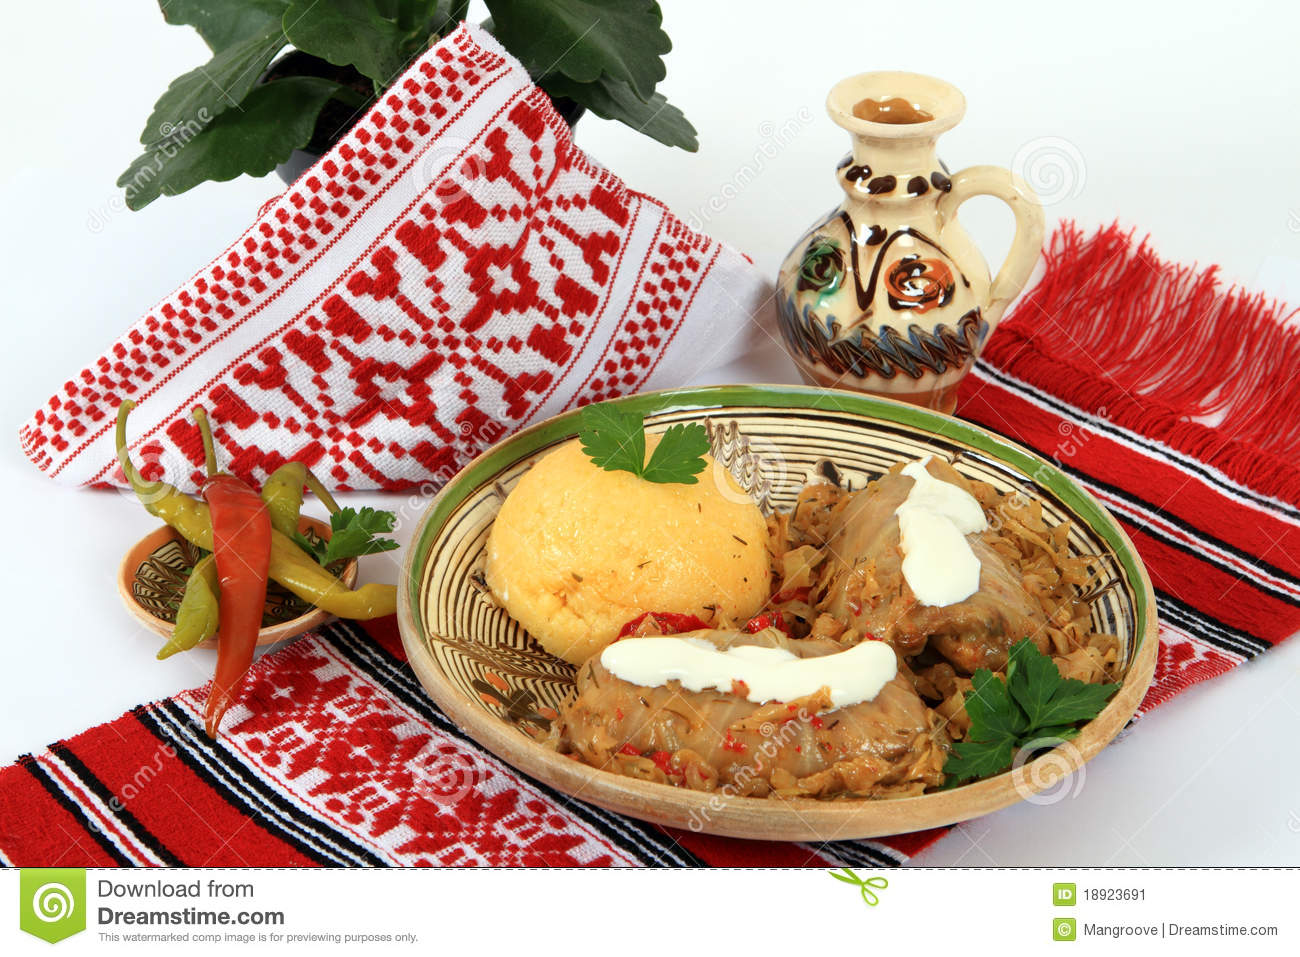 Traditional cuisine from Romania: sarmale